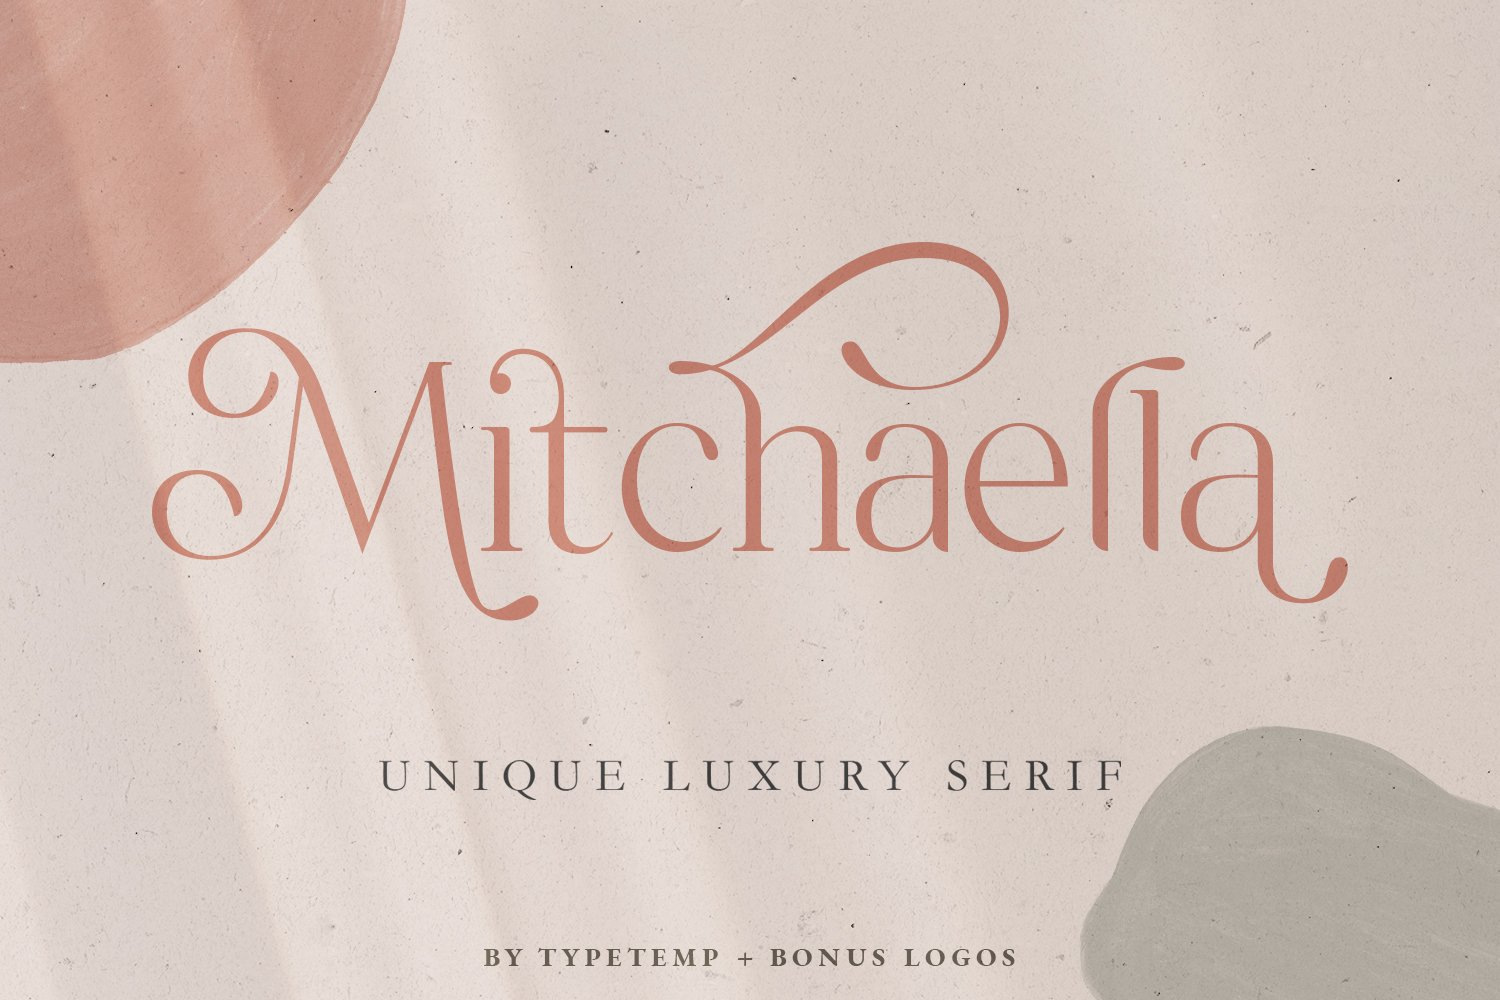 Mitchaella Unique Luxury Serif Typeface-1